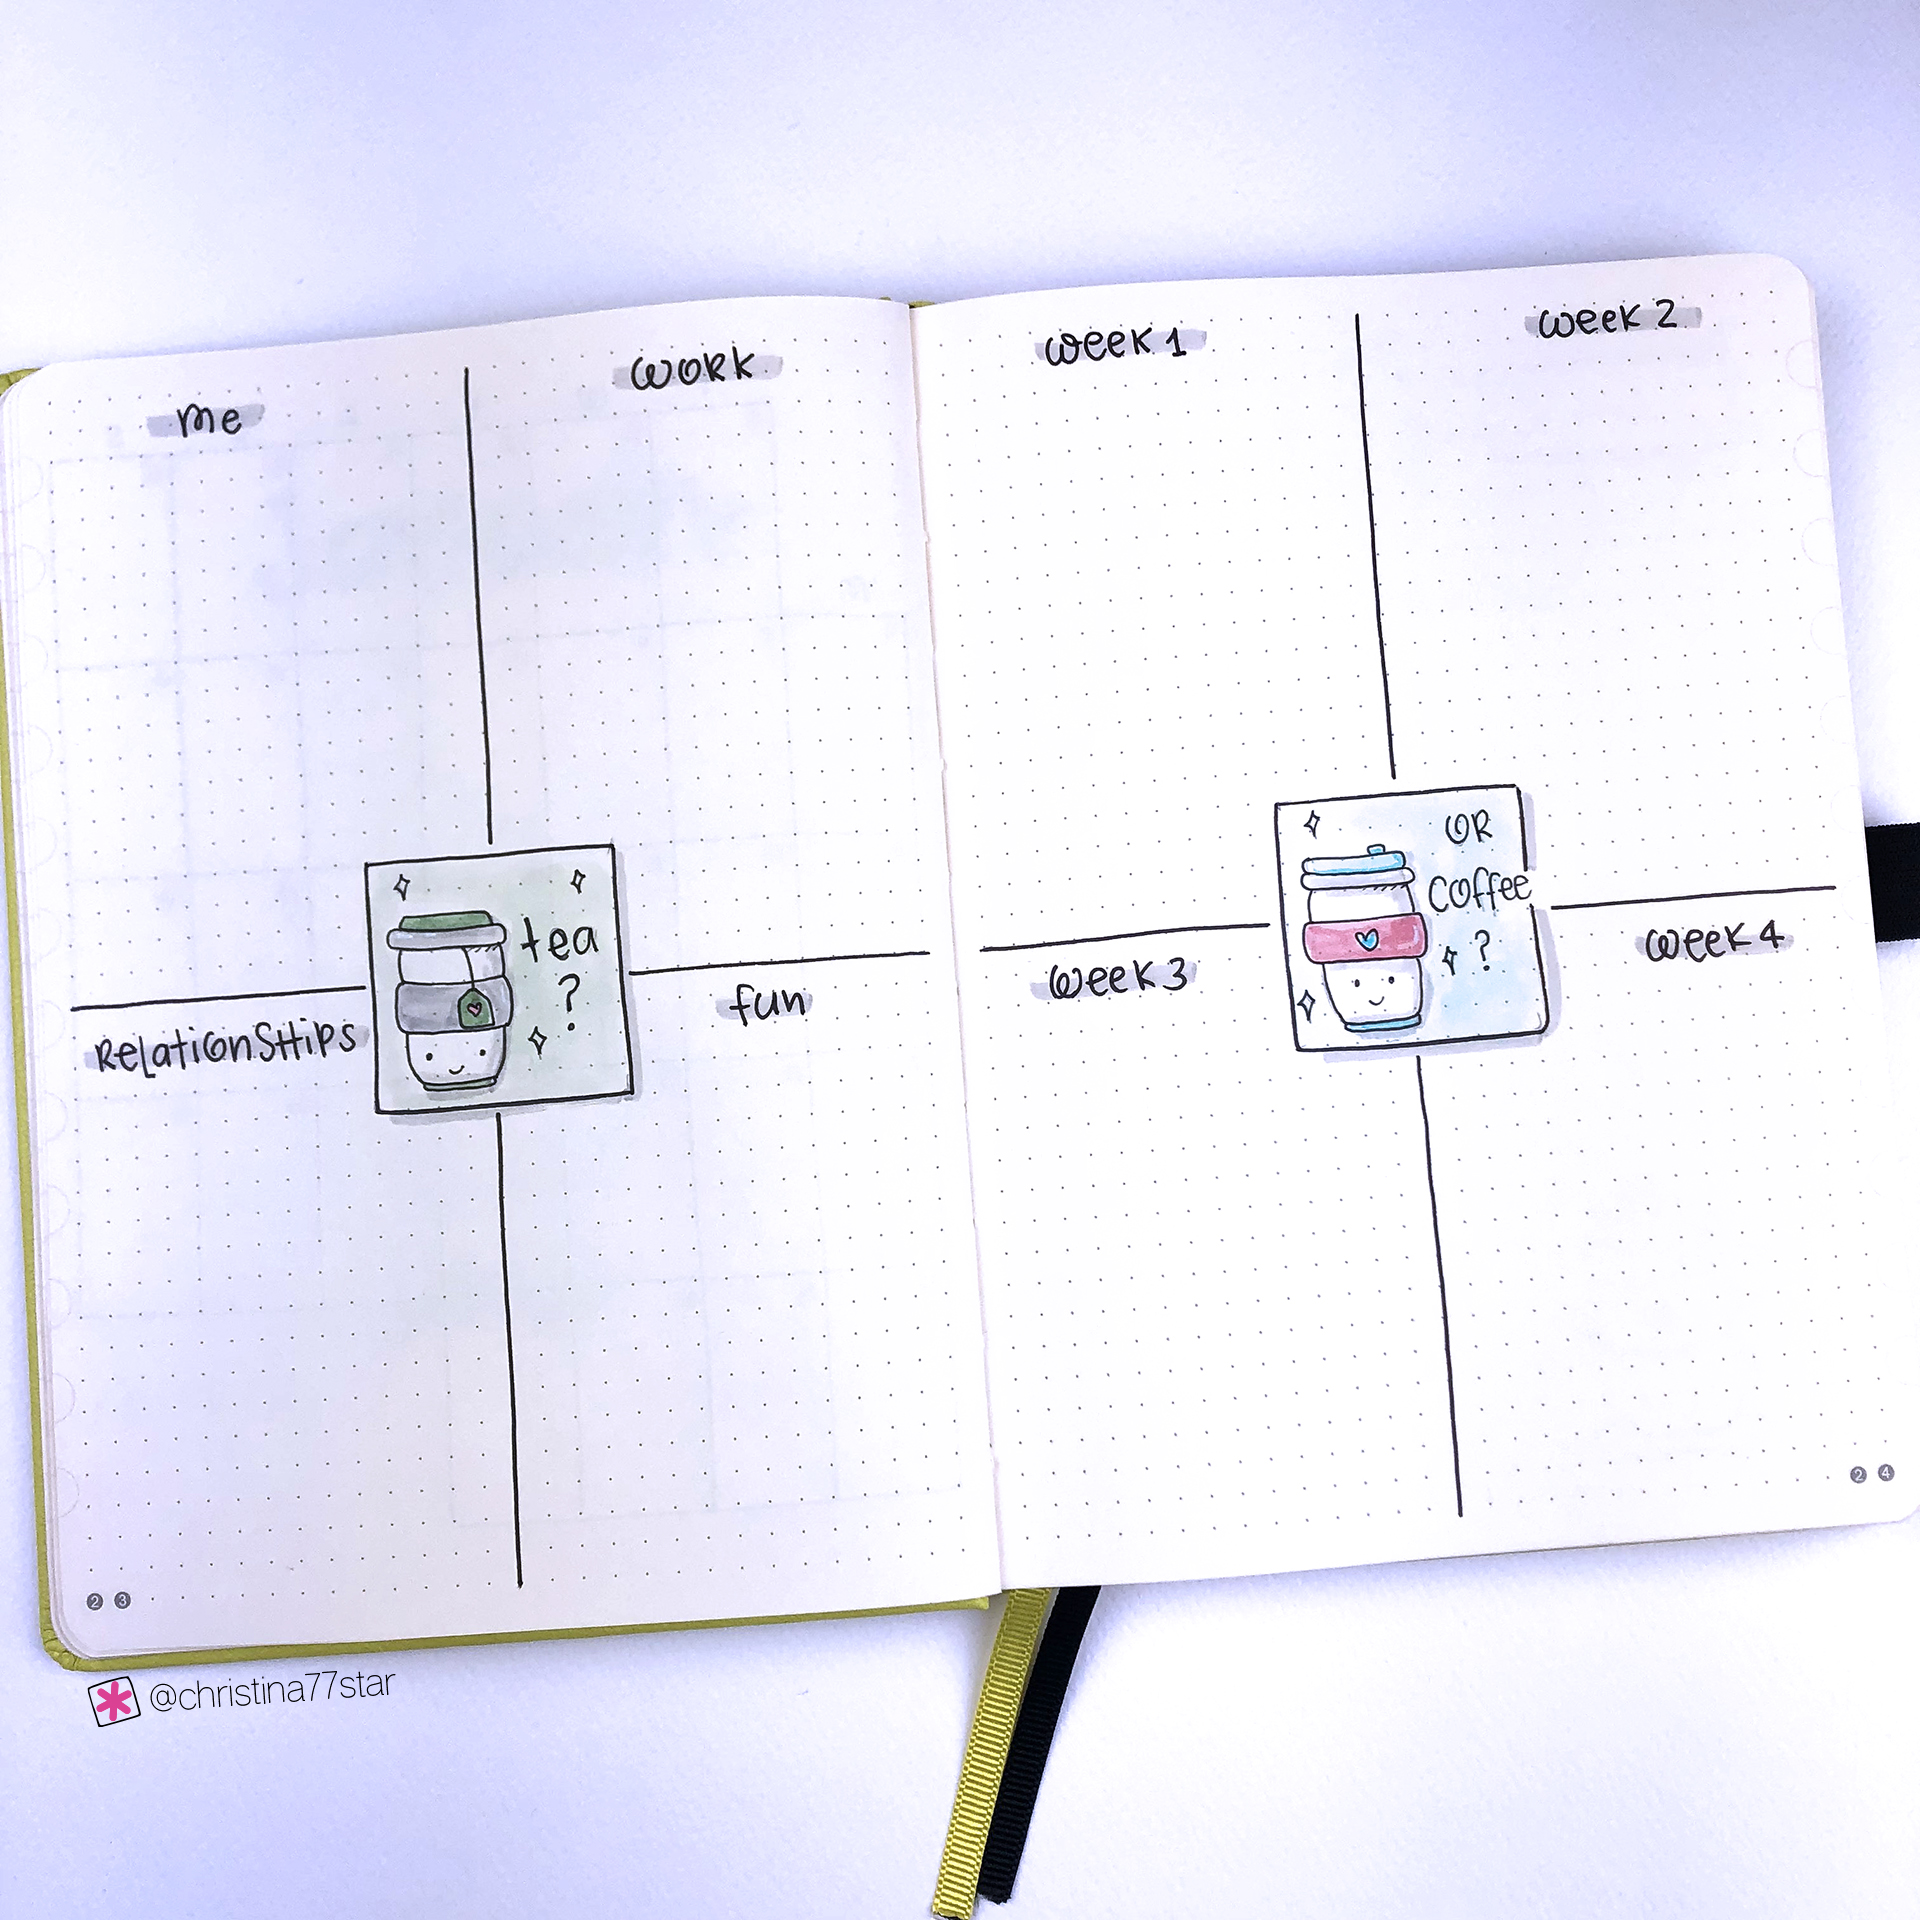 Goals and Tasks - Bullet Journal Plan With Me - January 2019